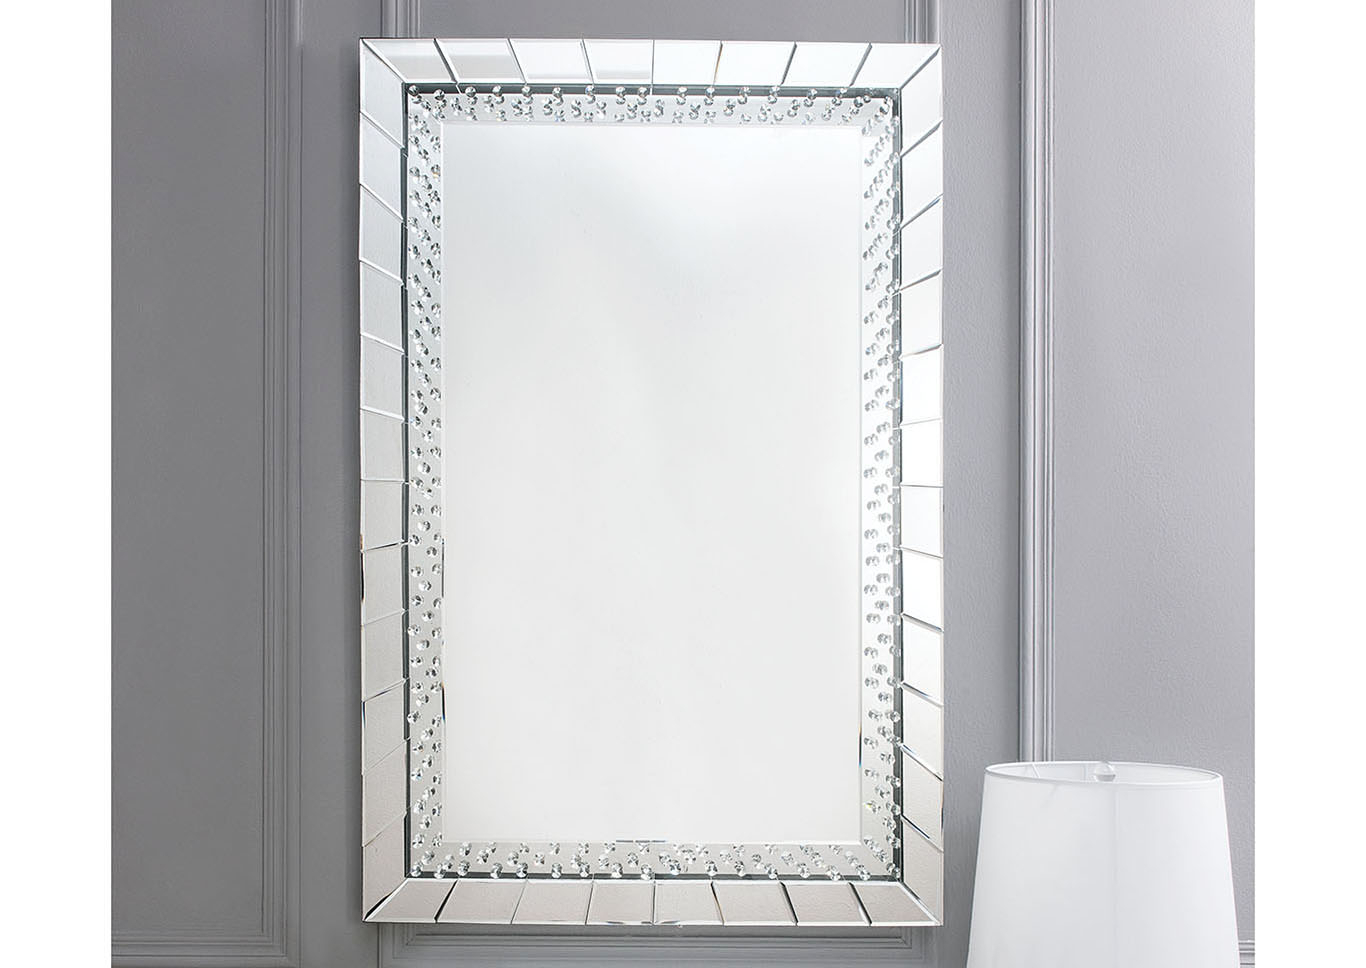 Just Furniture Nysa Mirror Tile Frame Accent Mirror Regarding Silver Frame Accent Mirrors (View 8 of 30)